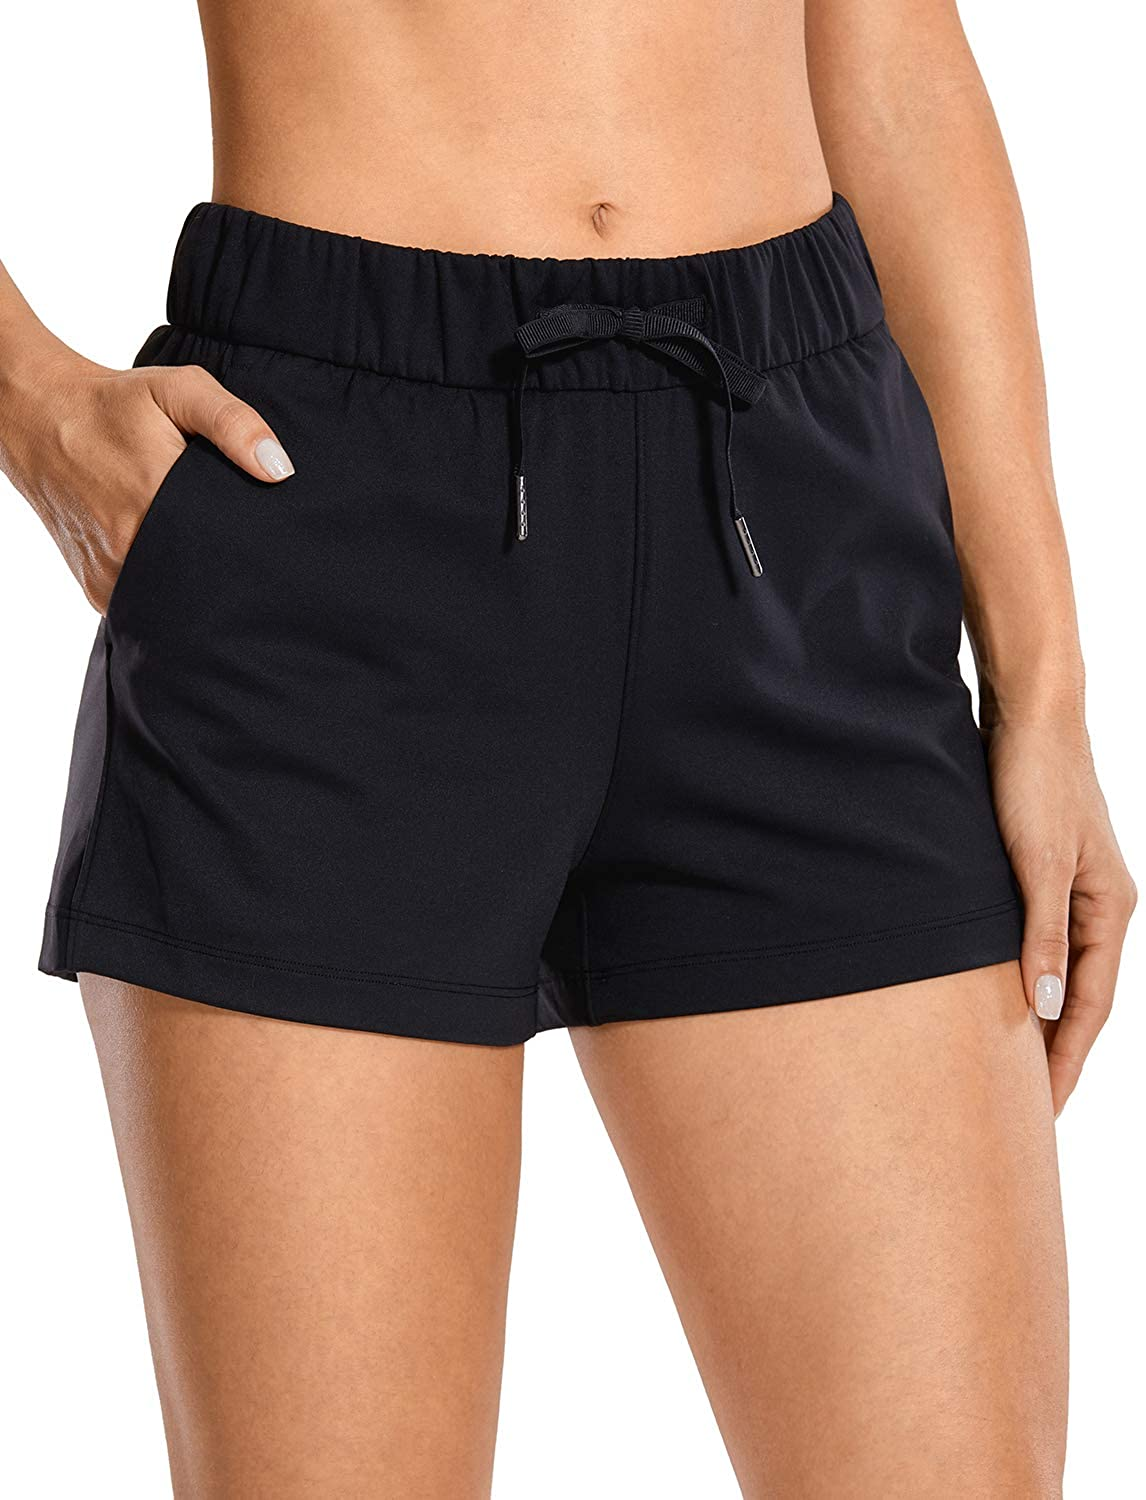 CRZ YOGA Women's Stretch Lounge Travel Shorts Elastic Waist Comfy Workout Shorts with Pockets -2.5 Inches at  Women's Clothing store